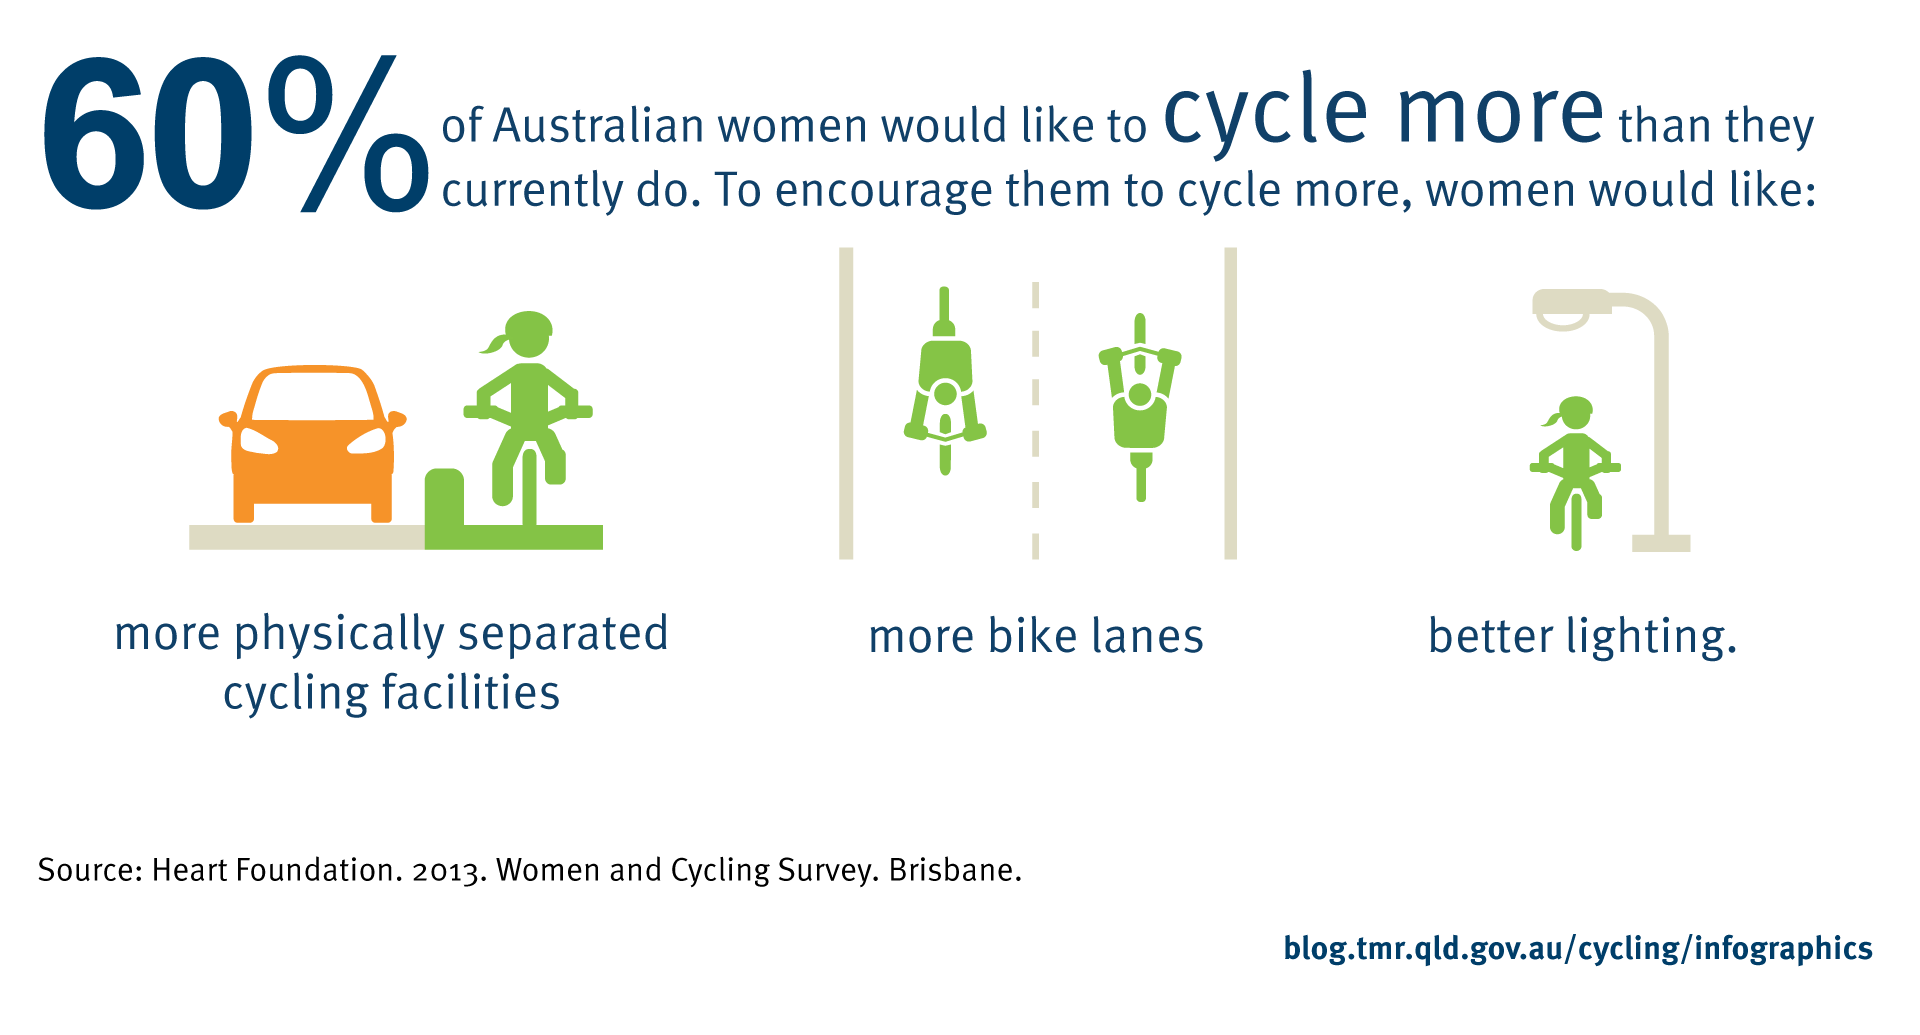 60% of Australian women would like to cycle more than they currently do. To encourage them to cycle more, women would like: more physically separated cycling facilities, more bike lanes and better lighting. Source: Heart Foundation. 2013. Women and Cycling Survey. Brisbane.